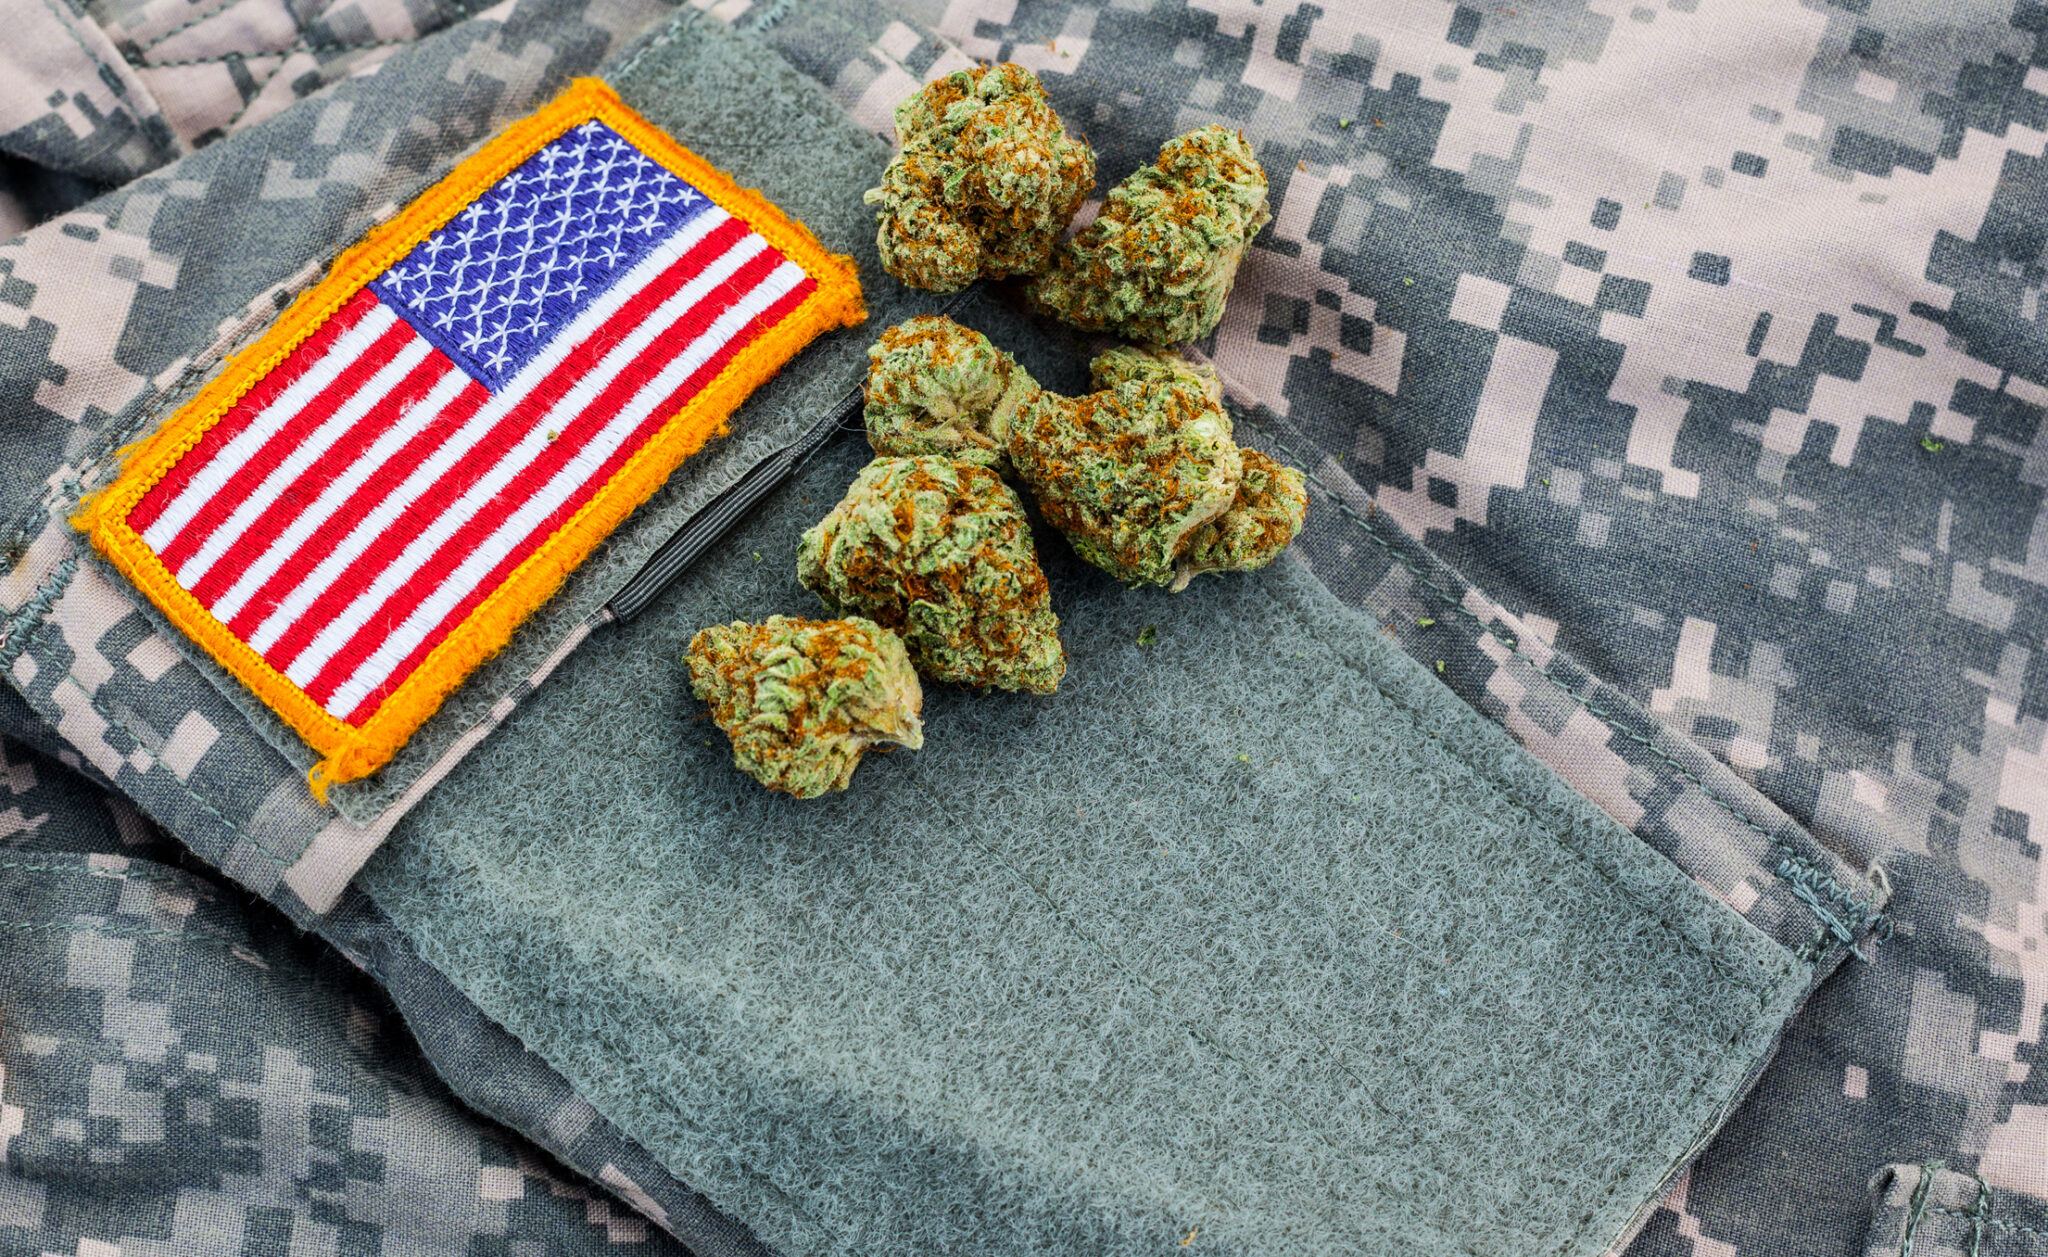 VA sending mixed messages for vets about cannabis use to treat PTSD